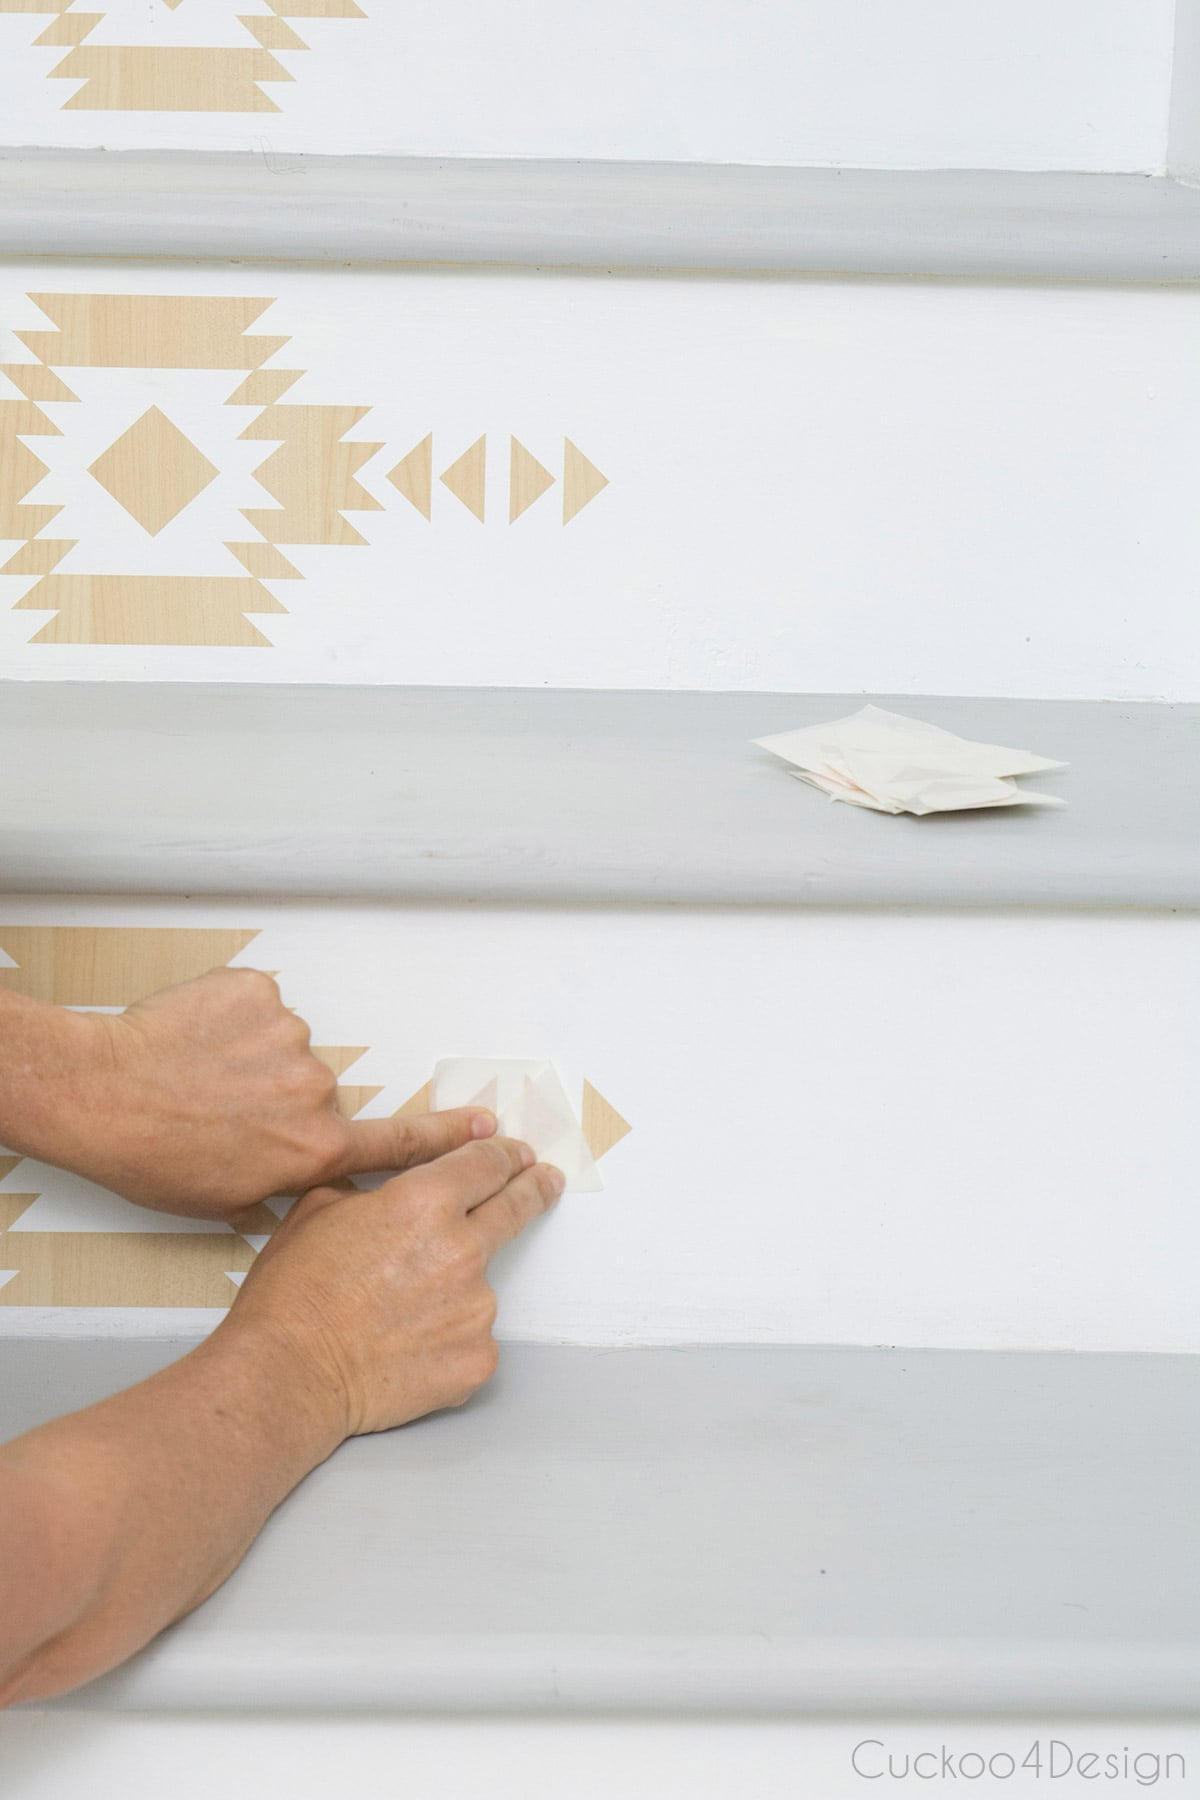 peeling off self-adhesive vinyl stair riser decals